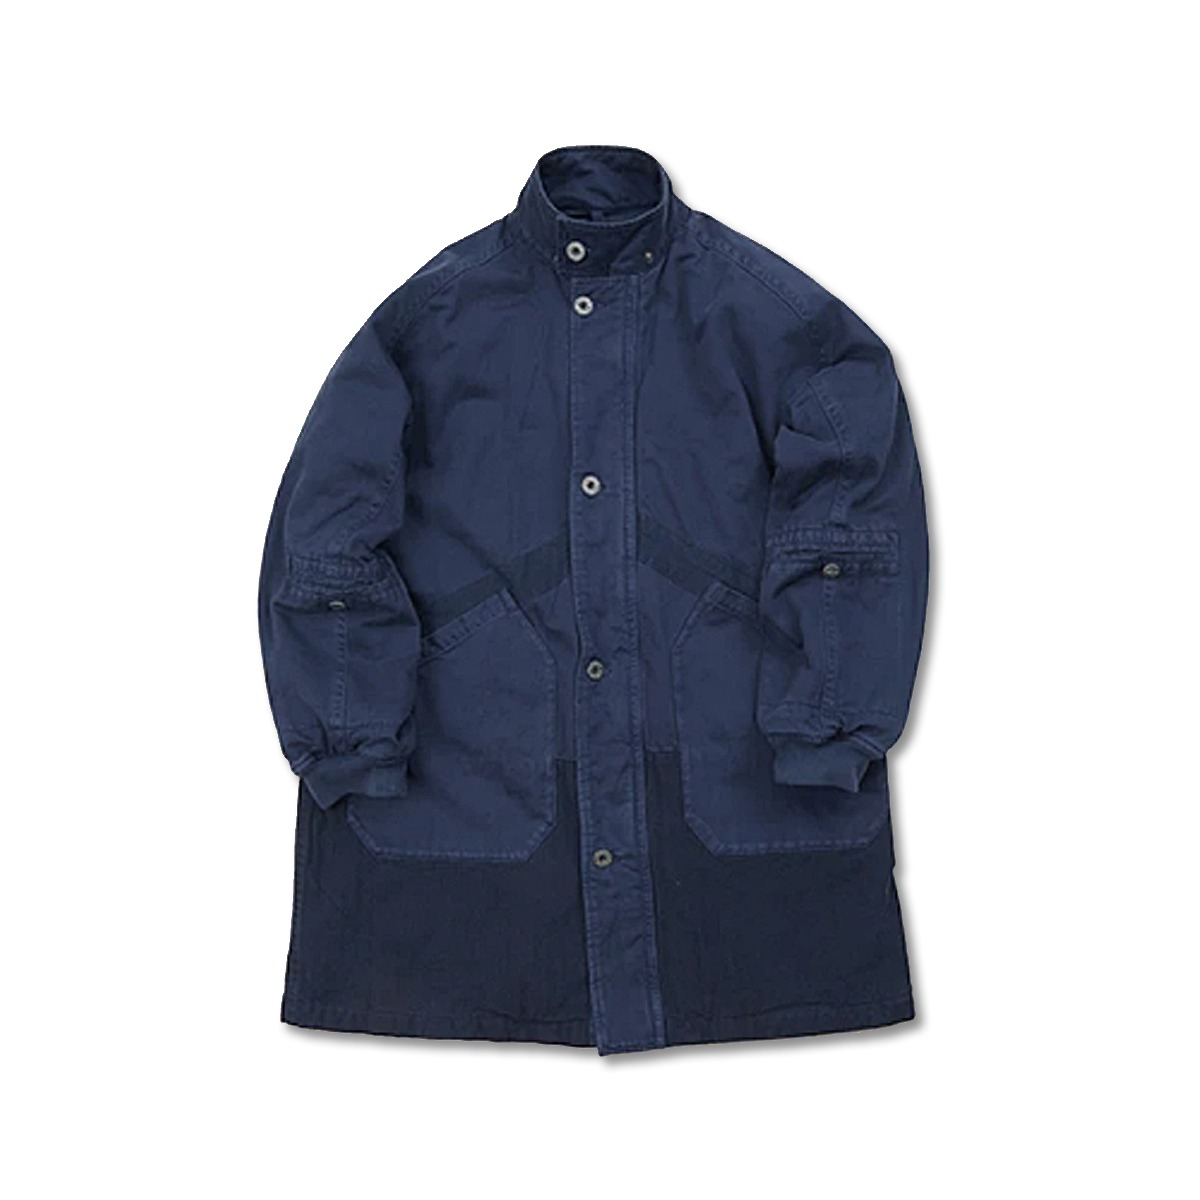 [NIGEL CABOURN] HOODED ARCTIC COAT 'BLUE'